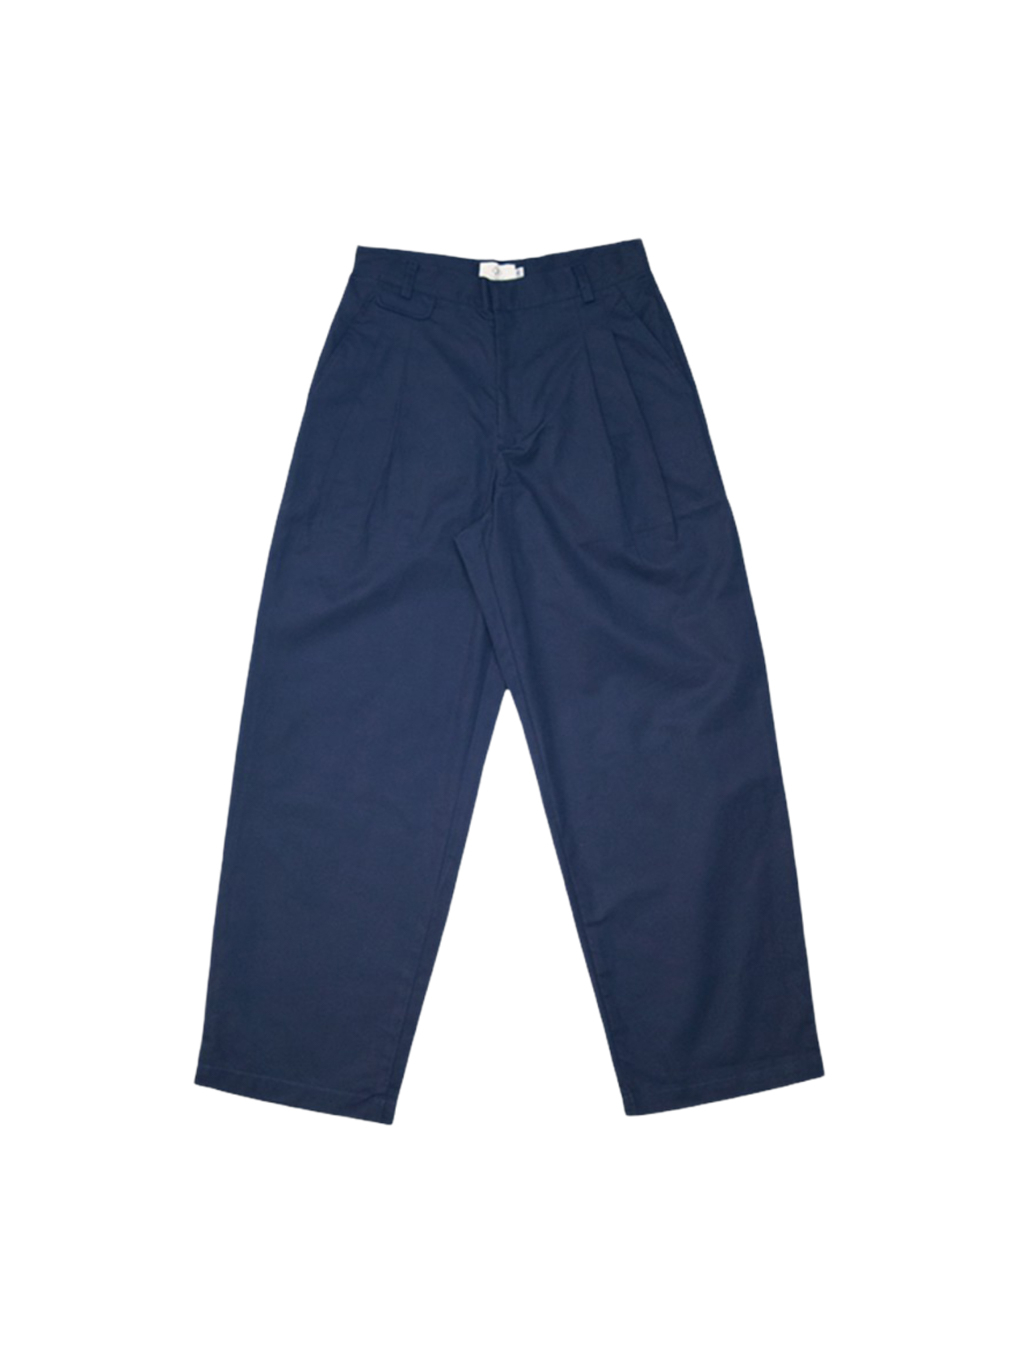 Mens ankle trousers (Navy)